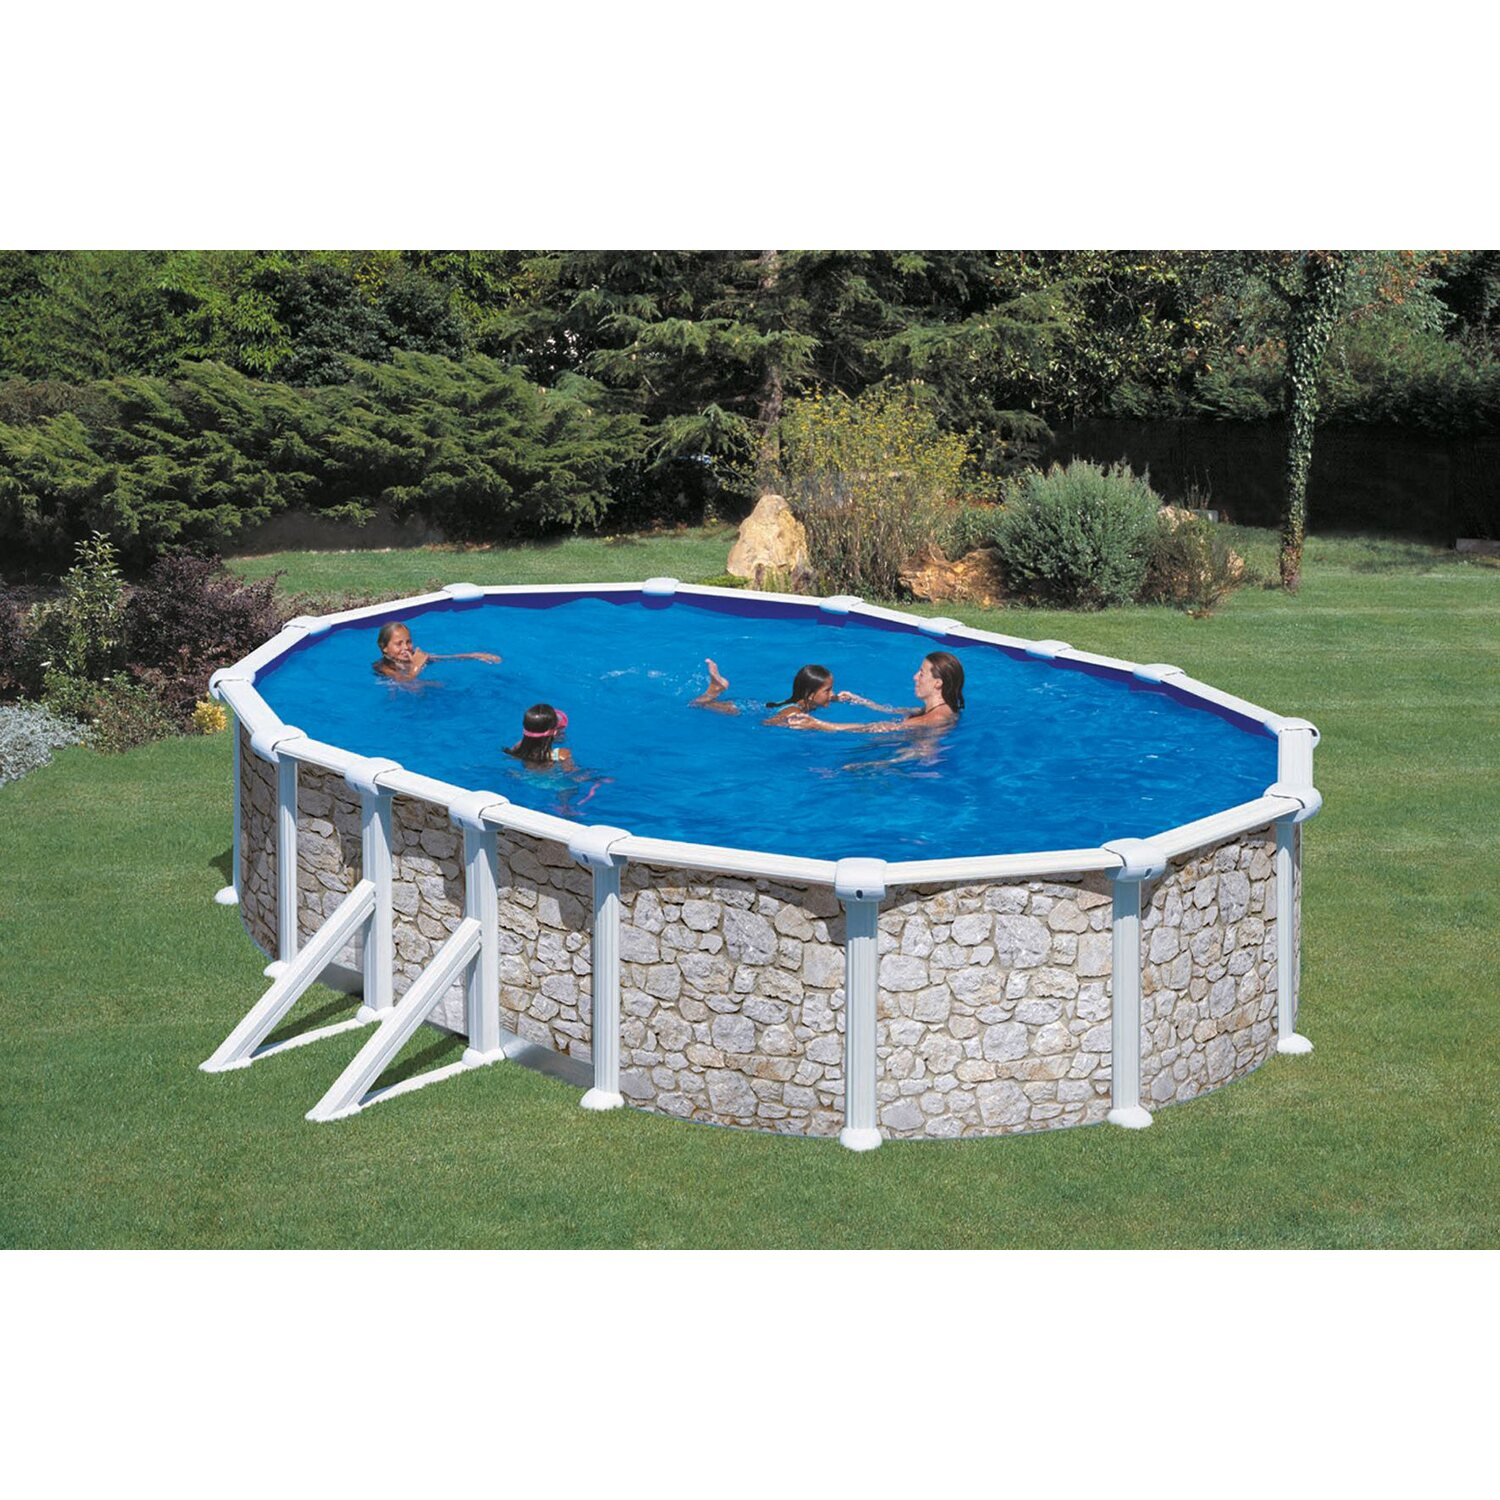 Holzpool set natur santo domingo aufstellbecken oval 533 for Holzpool obi